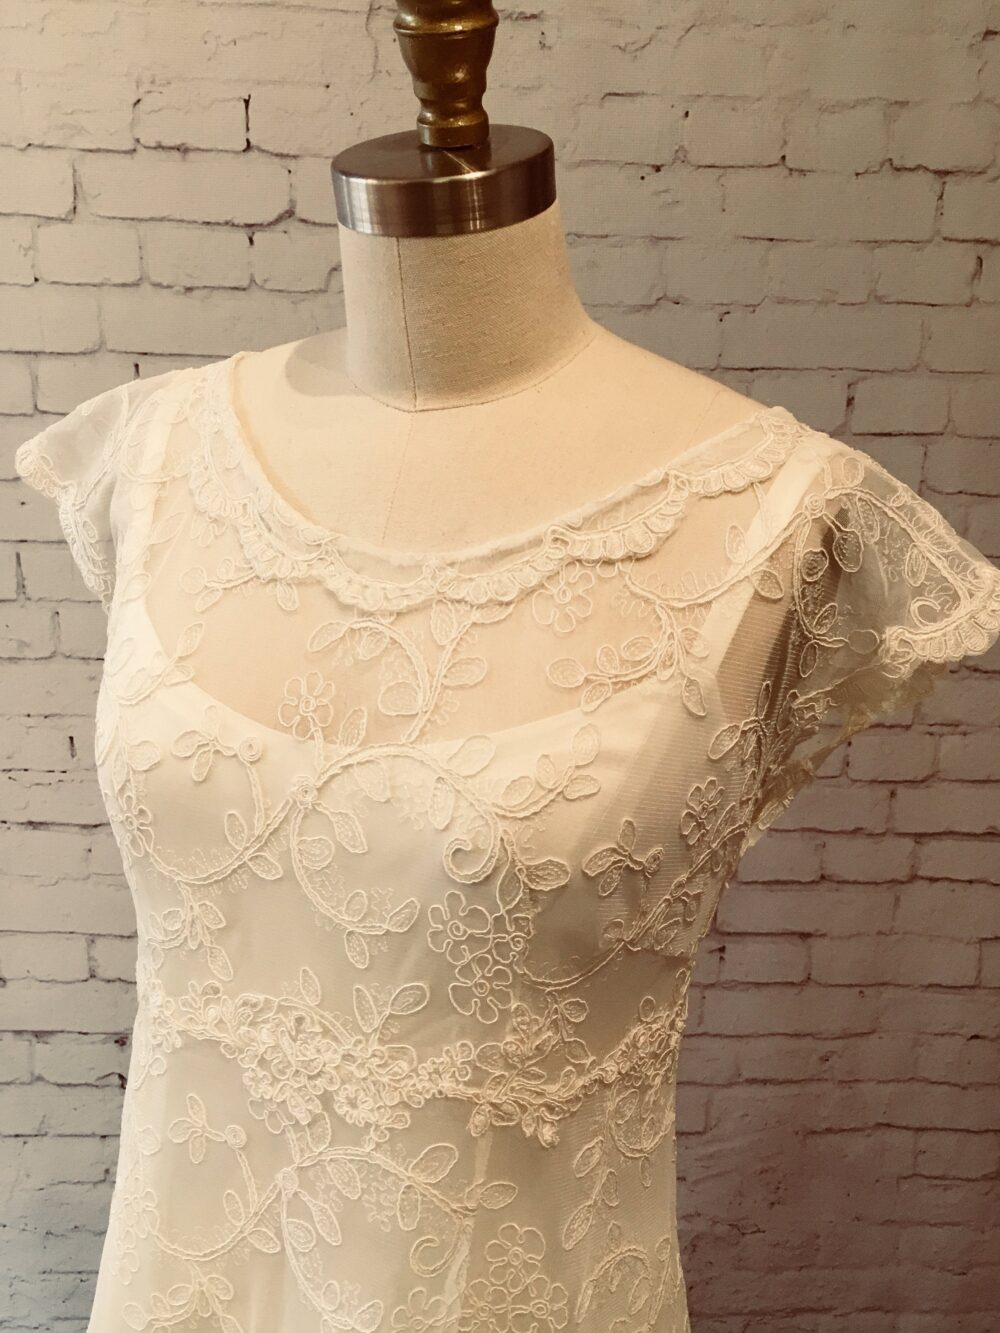 Lace Wedding Gown, Dress With Sleeves, Buttons Up Back & Train, Vintage Style, Boho Classic Simple Juliet Gown